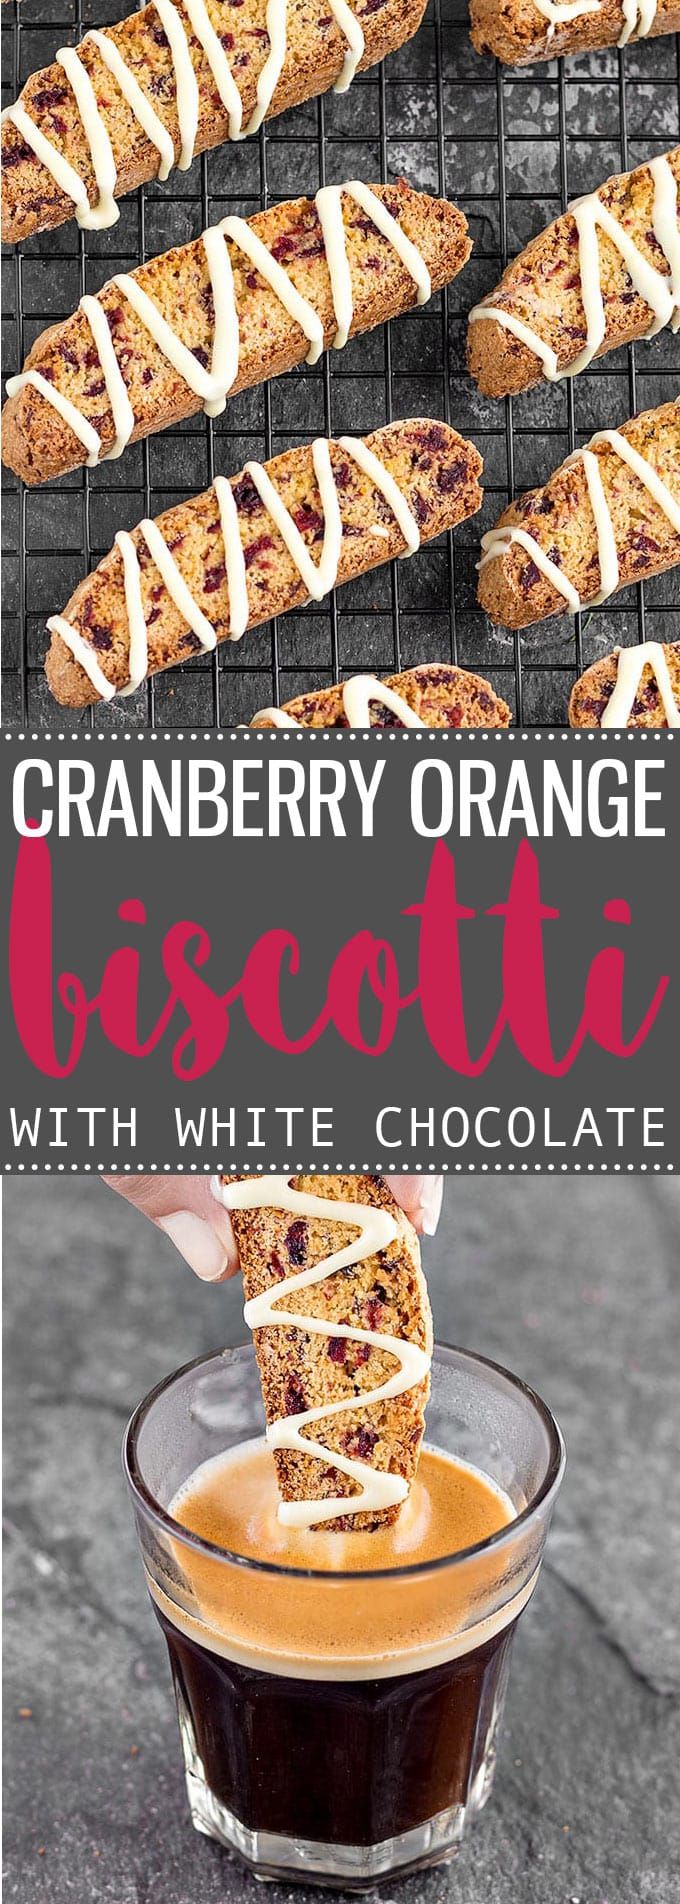 These crunchy Cranberry Orange Biscotti drizzled with white chocolate make a delightful and delicious holiday gift and they are perfect to dip into your hot coffee during the holidays! #christmas #holidays #cranberry #orange #biscotti #foodgift #giftideas #baking #easyrecipes